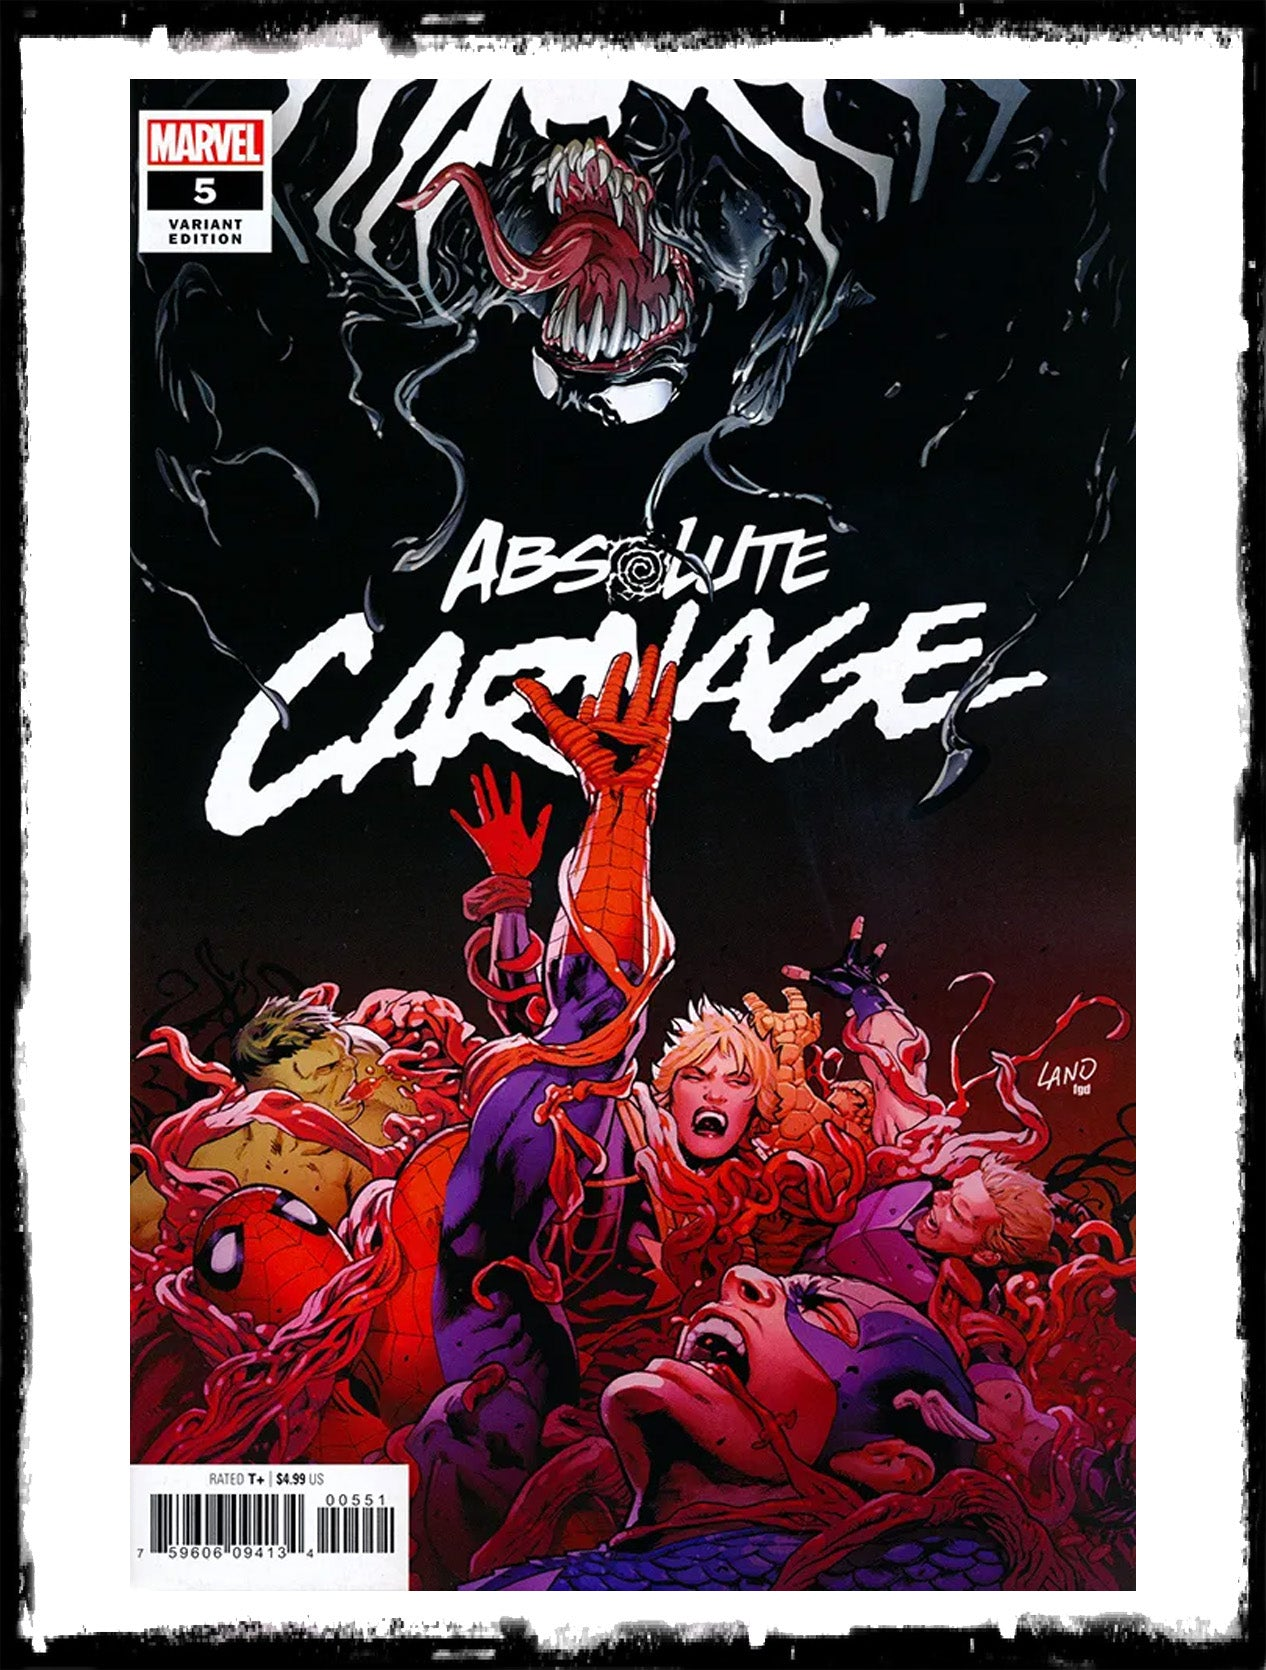 ABSOLUTE CARNAGE - #5 GREG LAND VARIANT (2019 - NM)